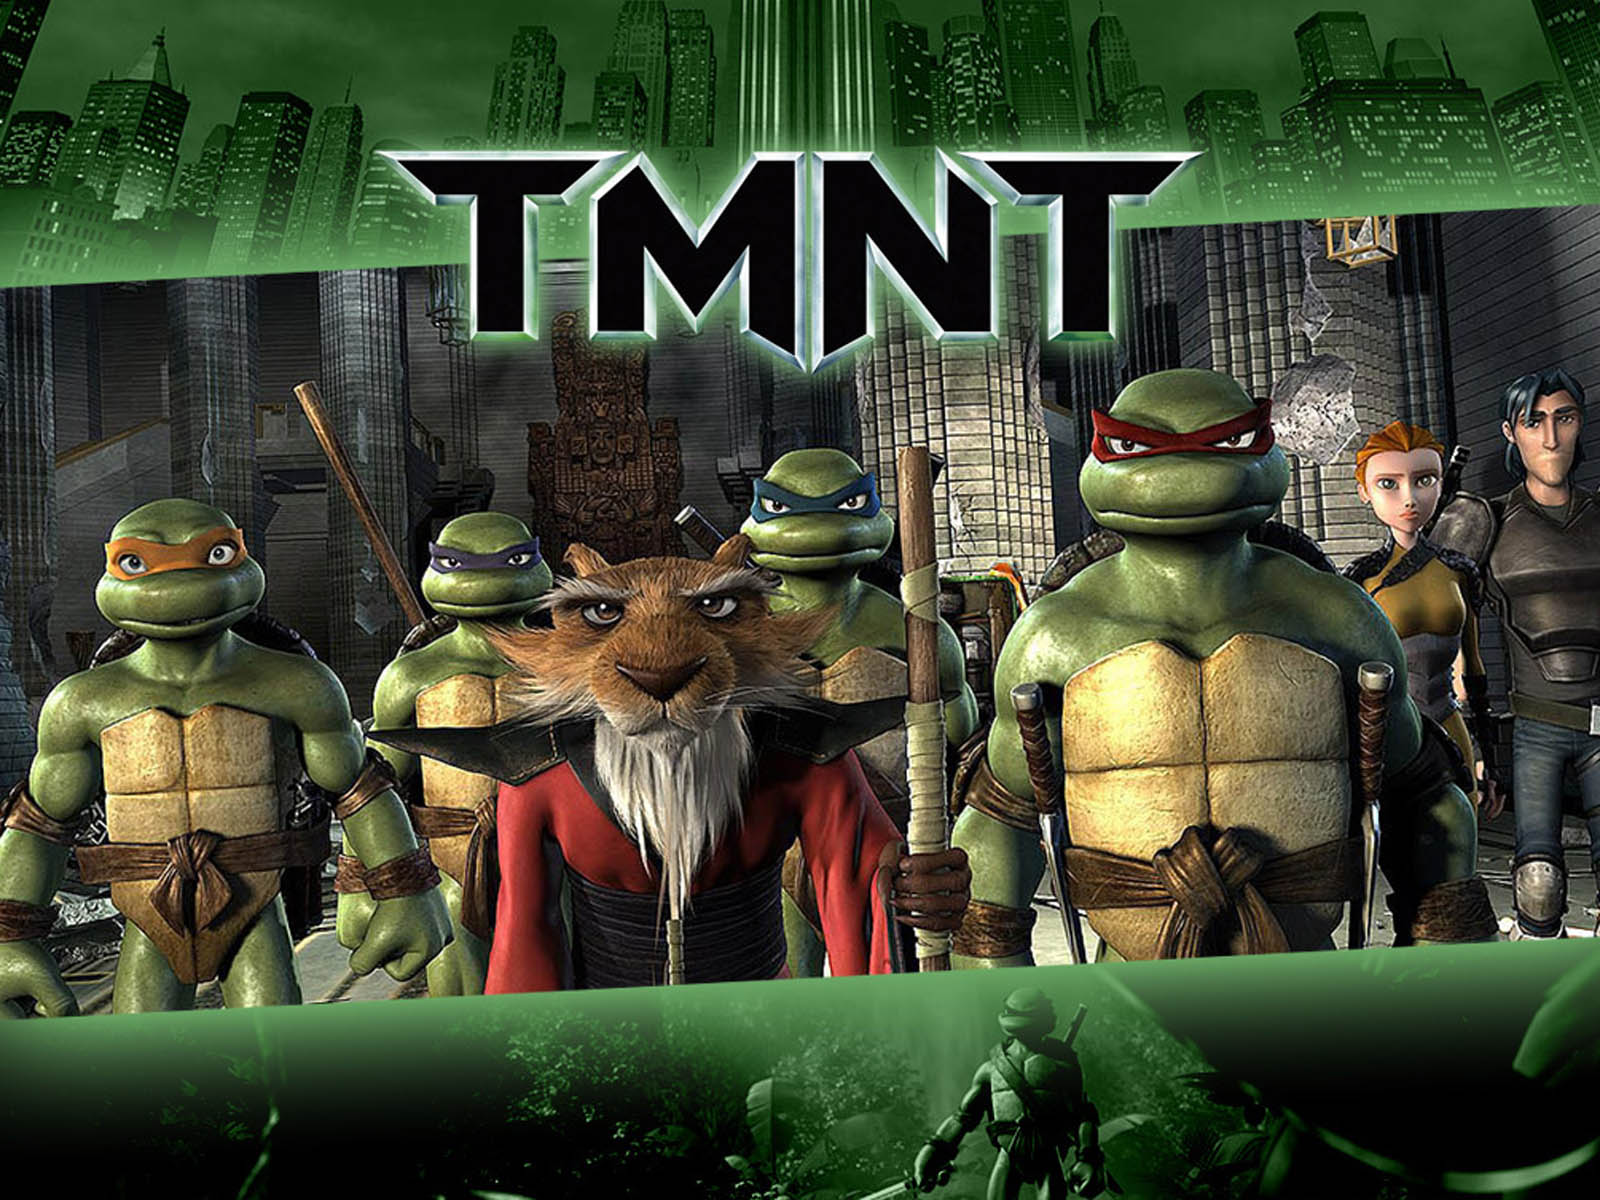 Bestwall Tmnt Teenage Mutant Ninja Turtles Wallpapers